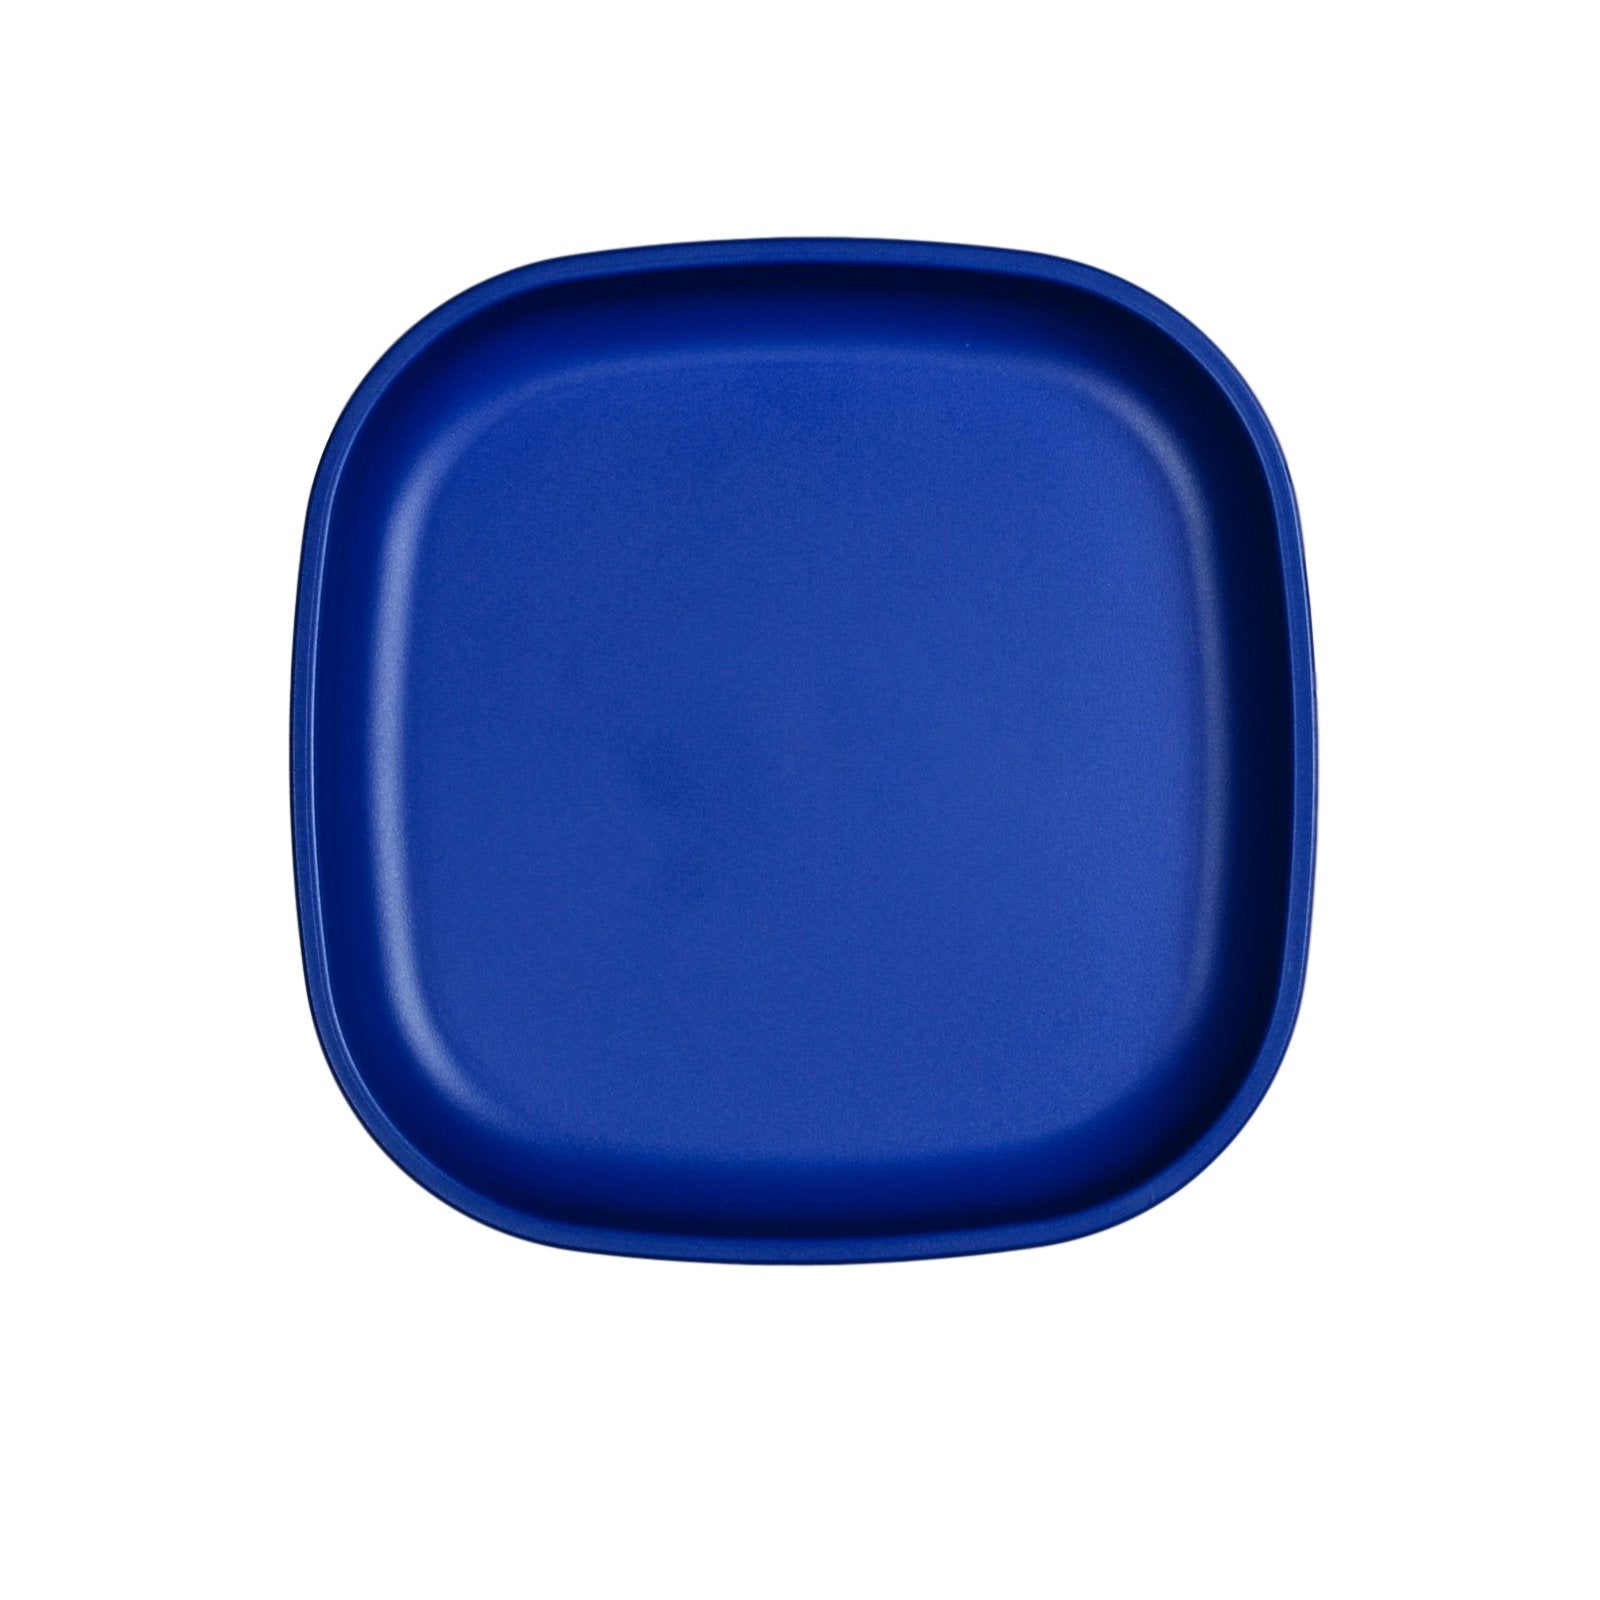 Replay Large Plate Replay Dinnerware Navy at Little Earth Nest Eco Shop